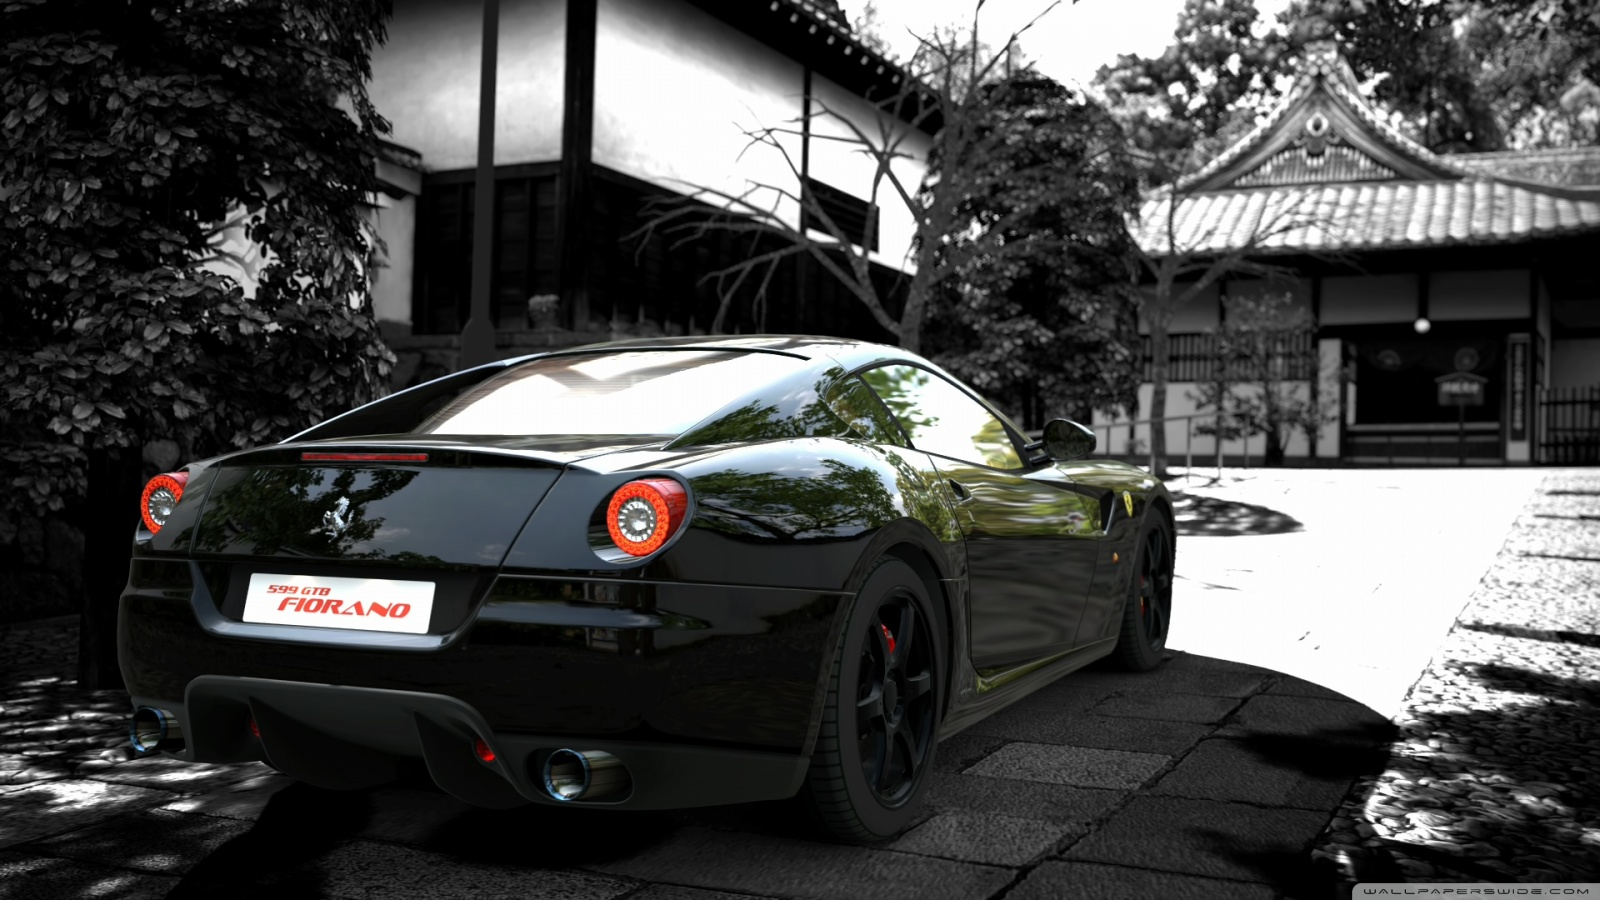 Car Wallpaper Smartphone Ferrari 599 Gto 4k Hd Desktop Wallpaper For 4k Ultra Hd Tv